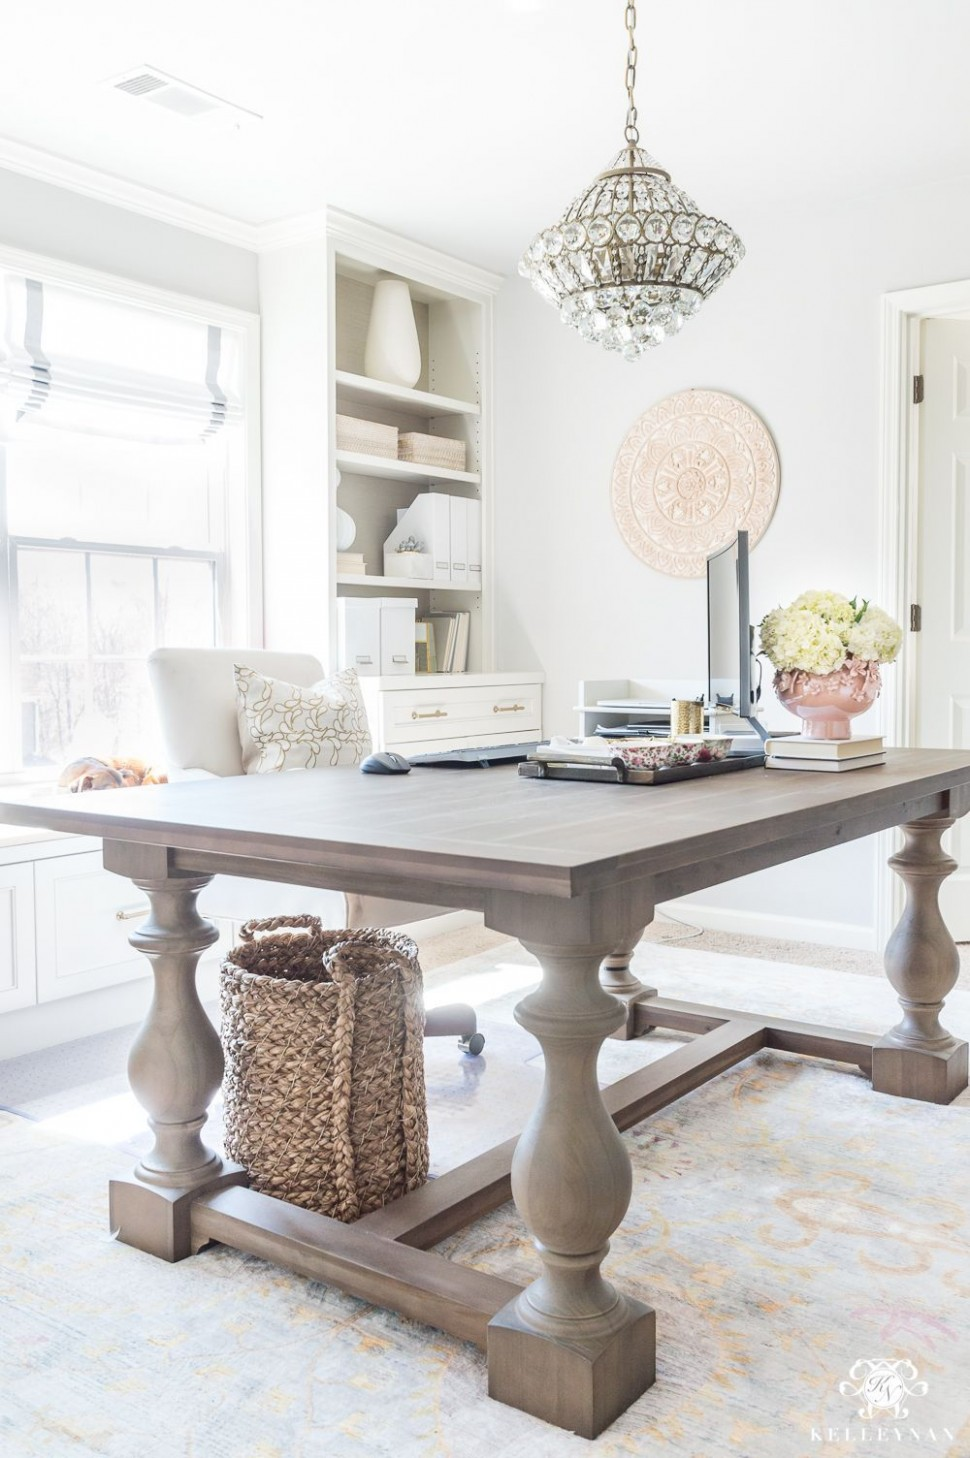 Home Office with Large Table Desk Ideas  Home office decor, Home  - Home Office Ideas In Dining Room